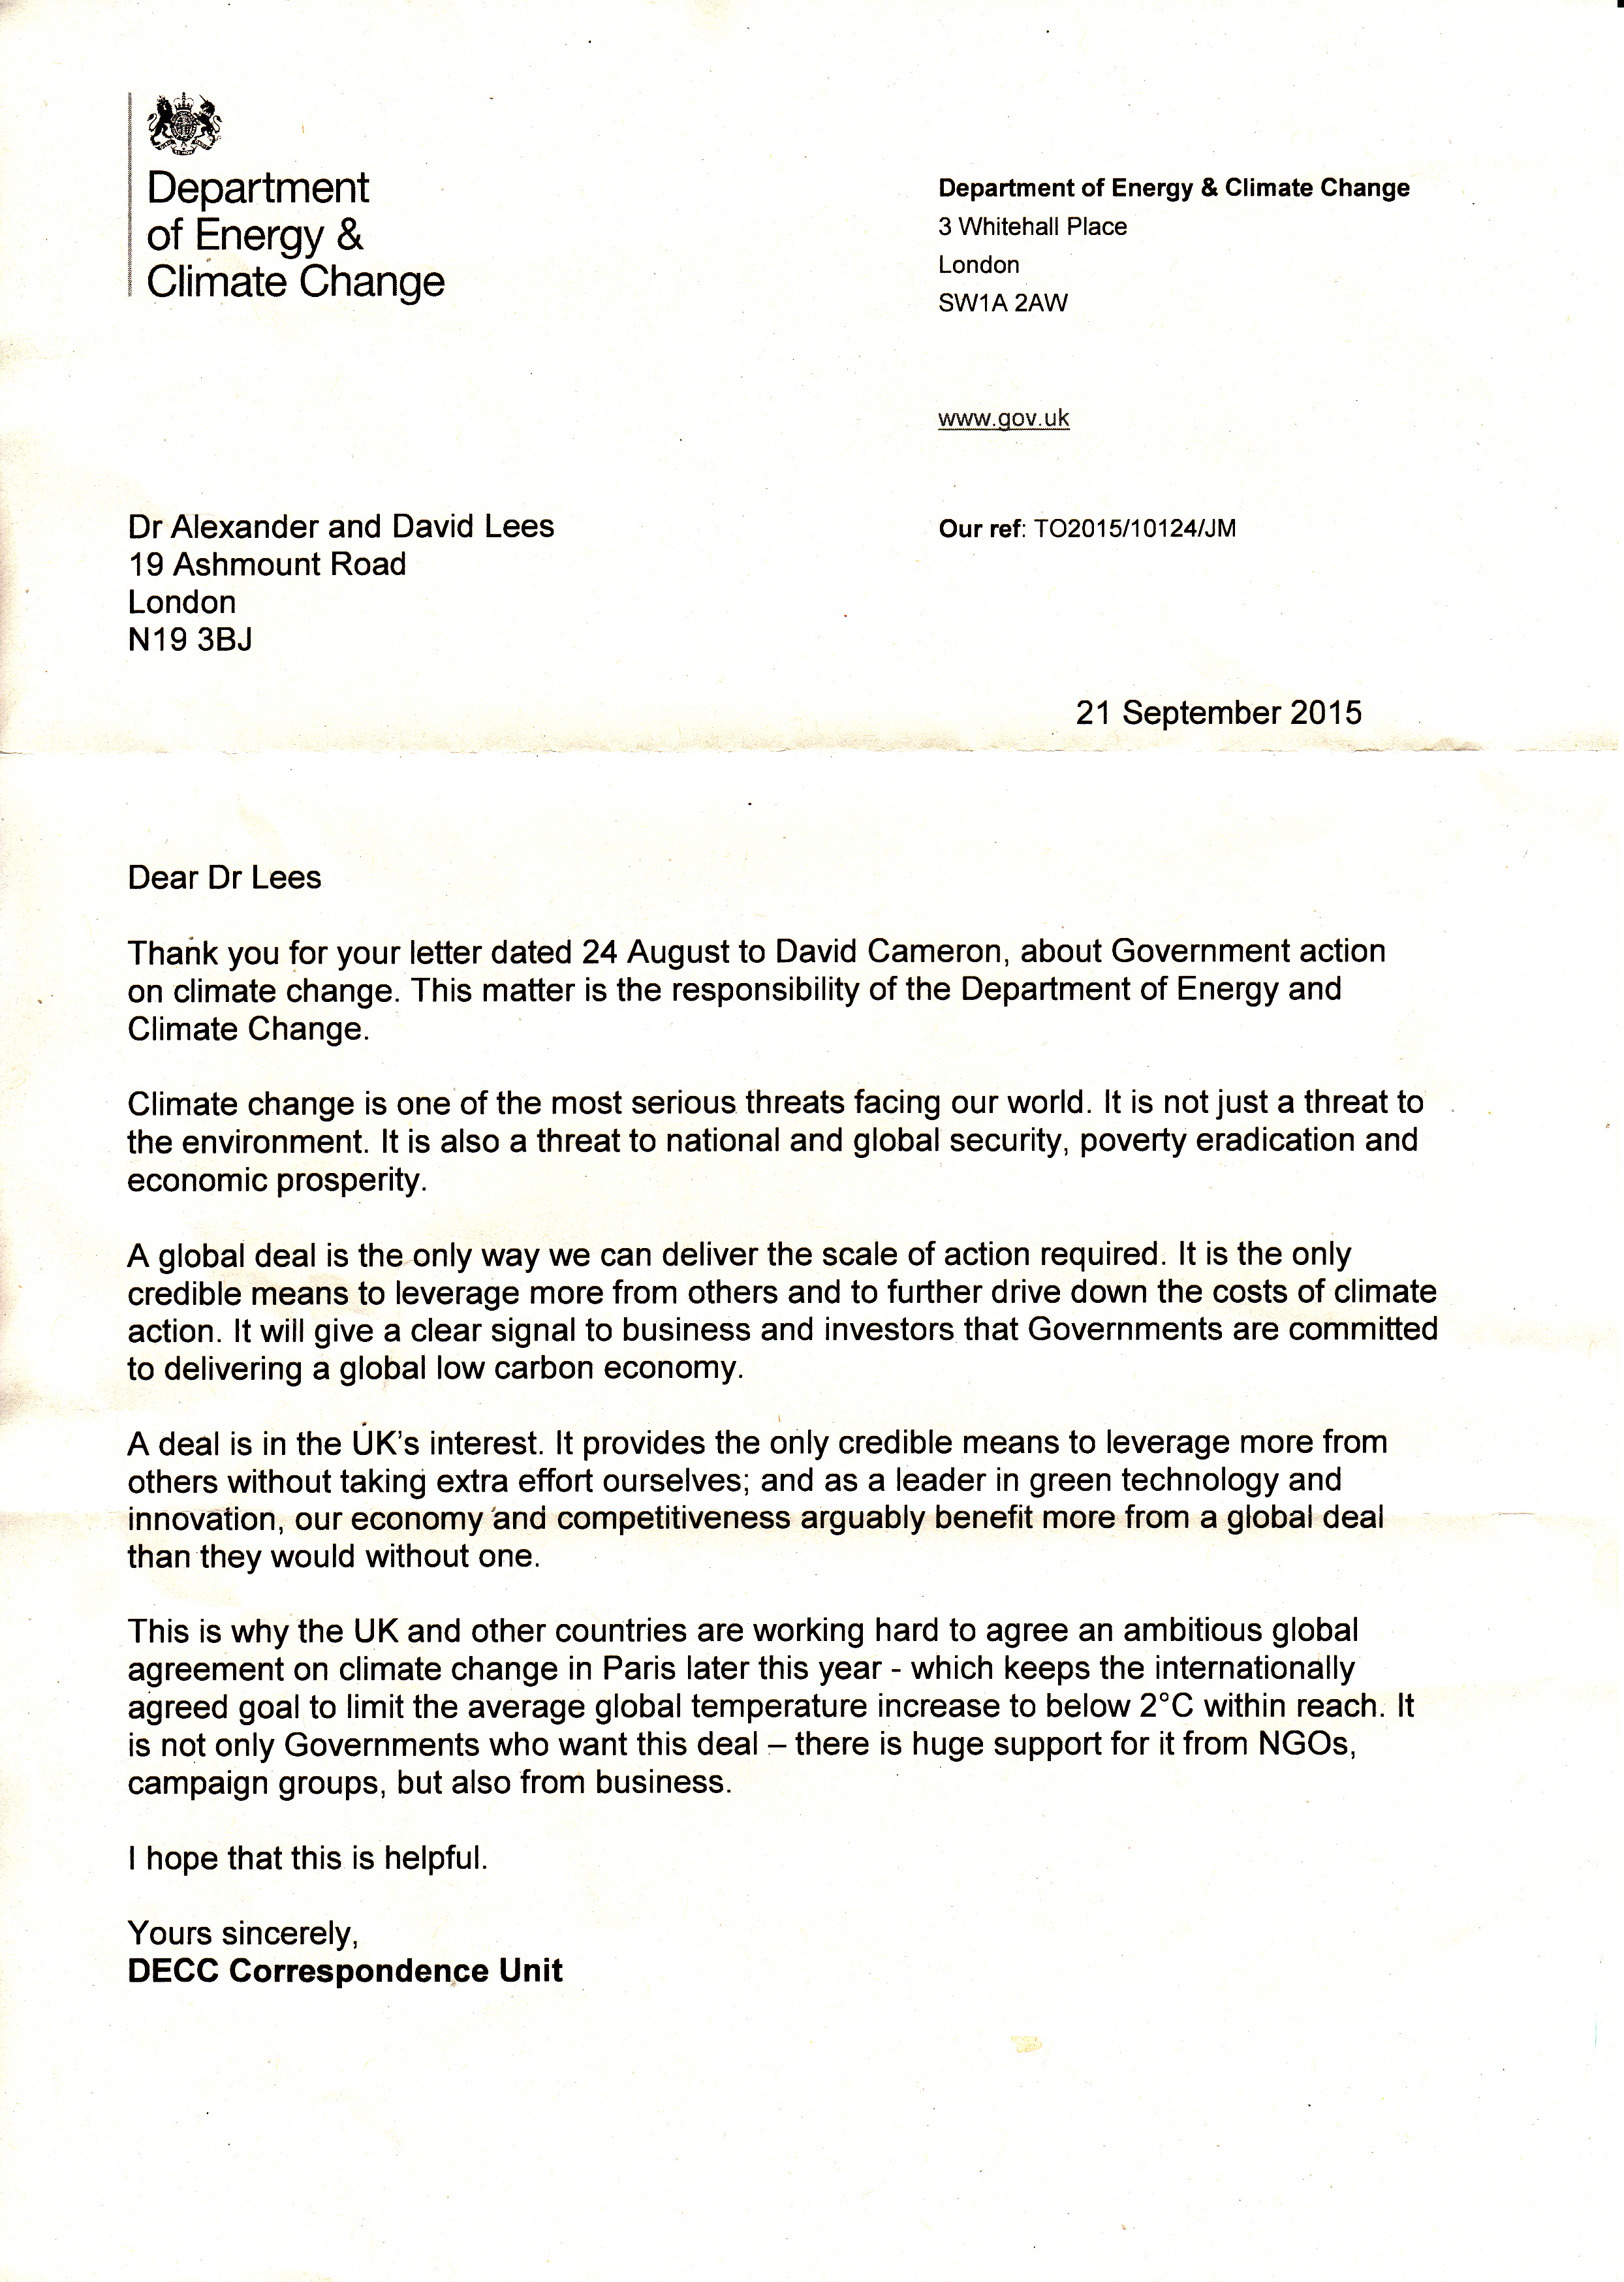 Lees reply from DECC 21 sept 2015